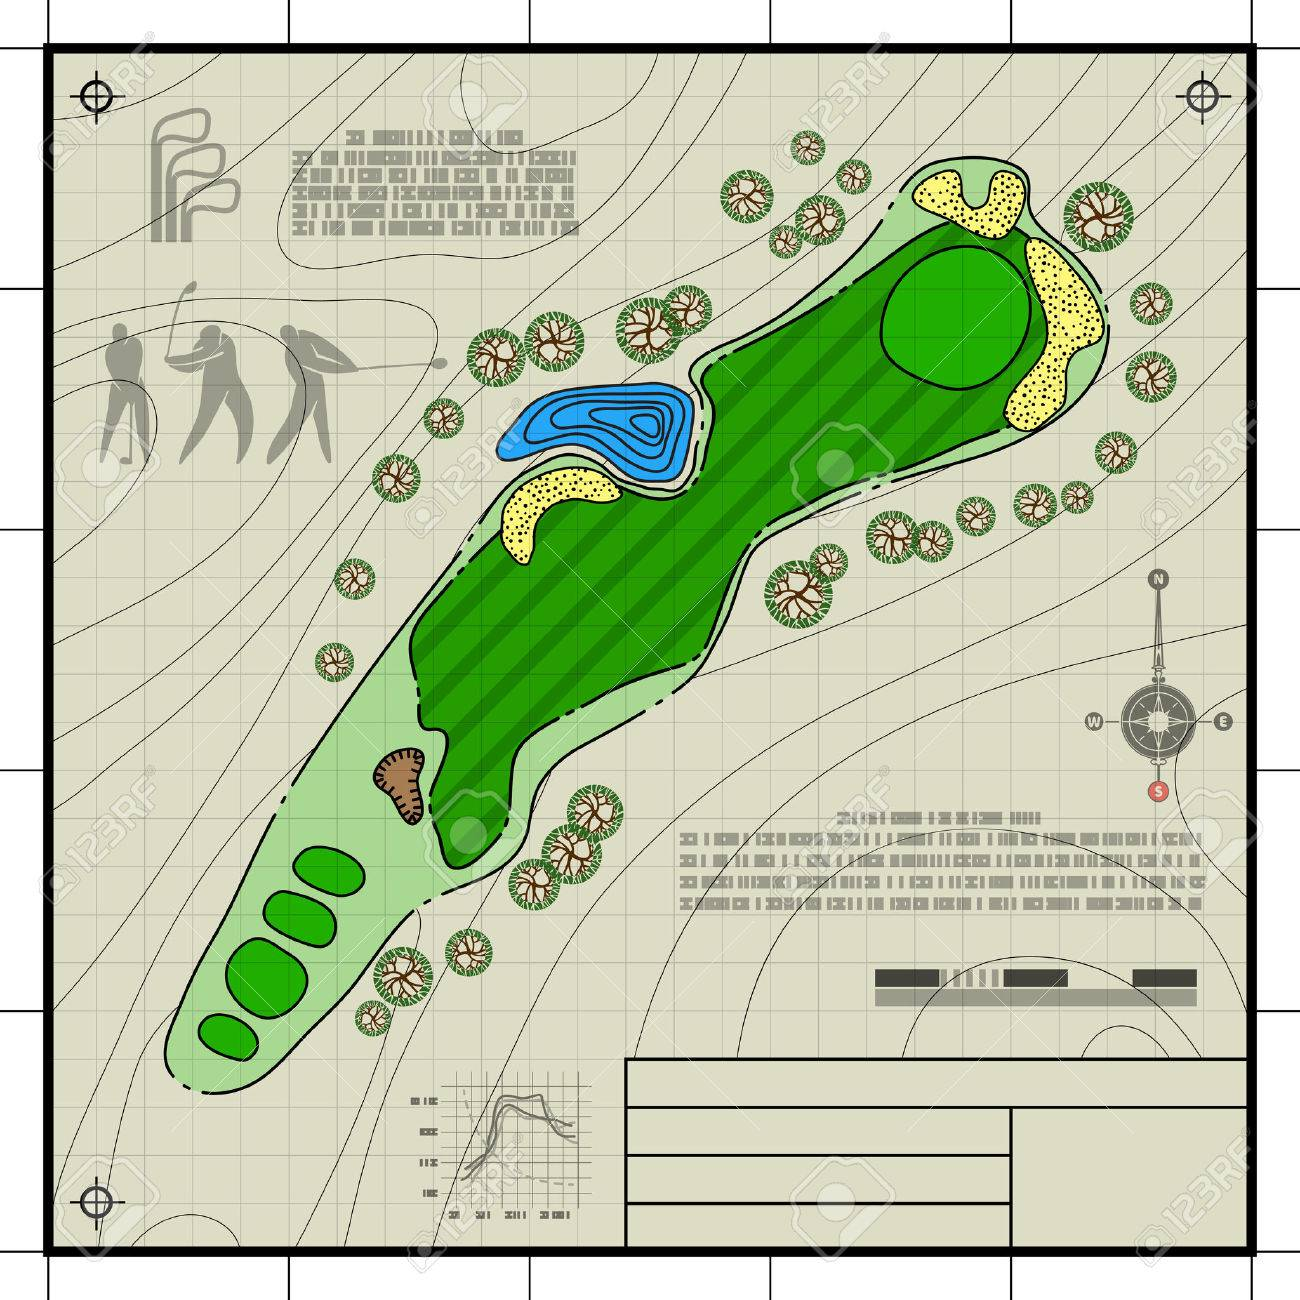 Golf course layout abstract design stylized blueprint technical abstract design stylized blueprint technical drawing background stock vector 42894747 malvernweather Gallery